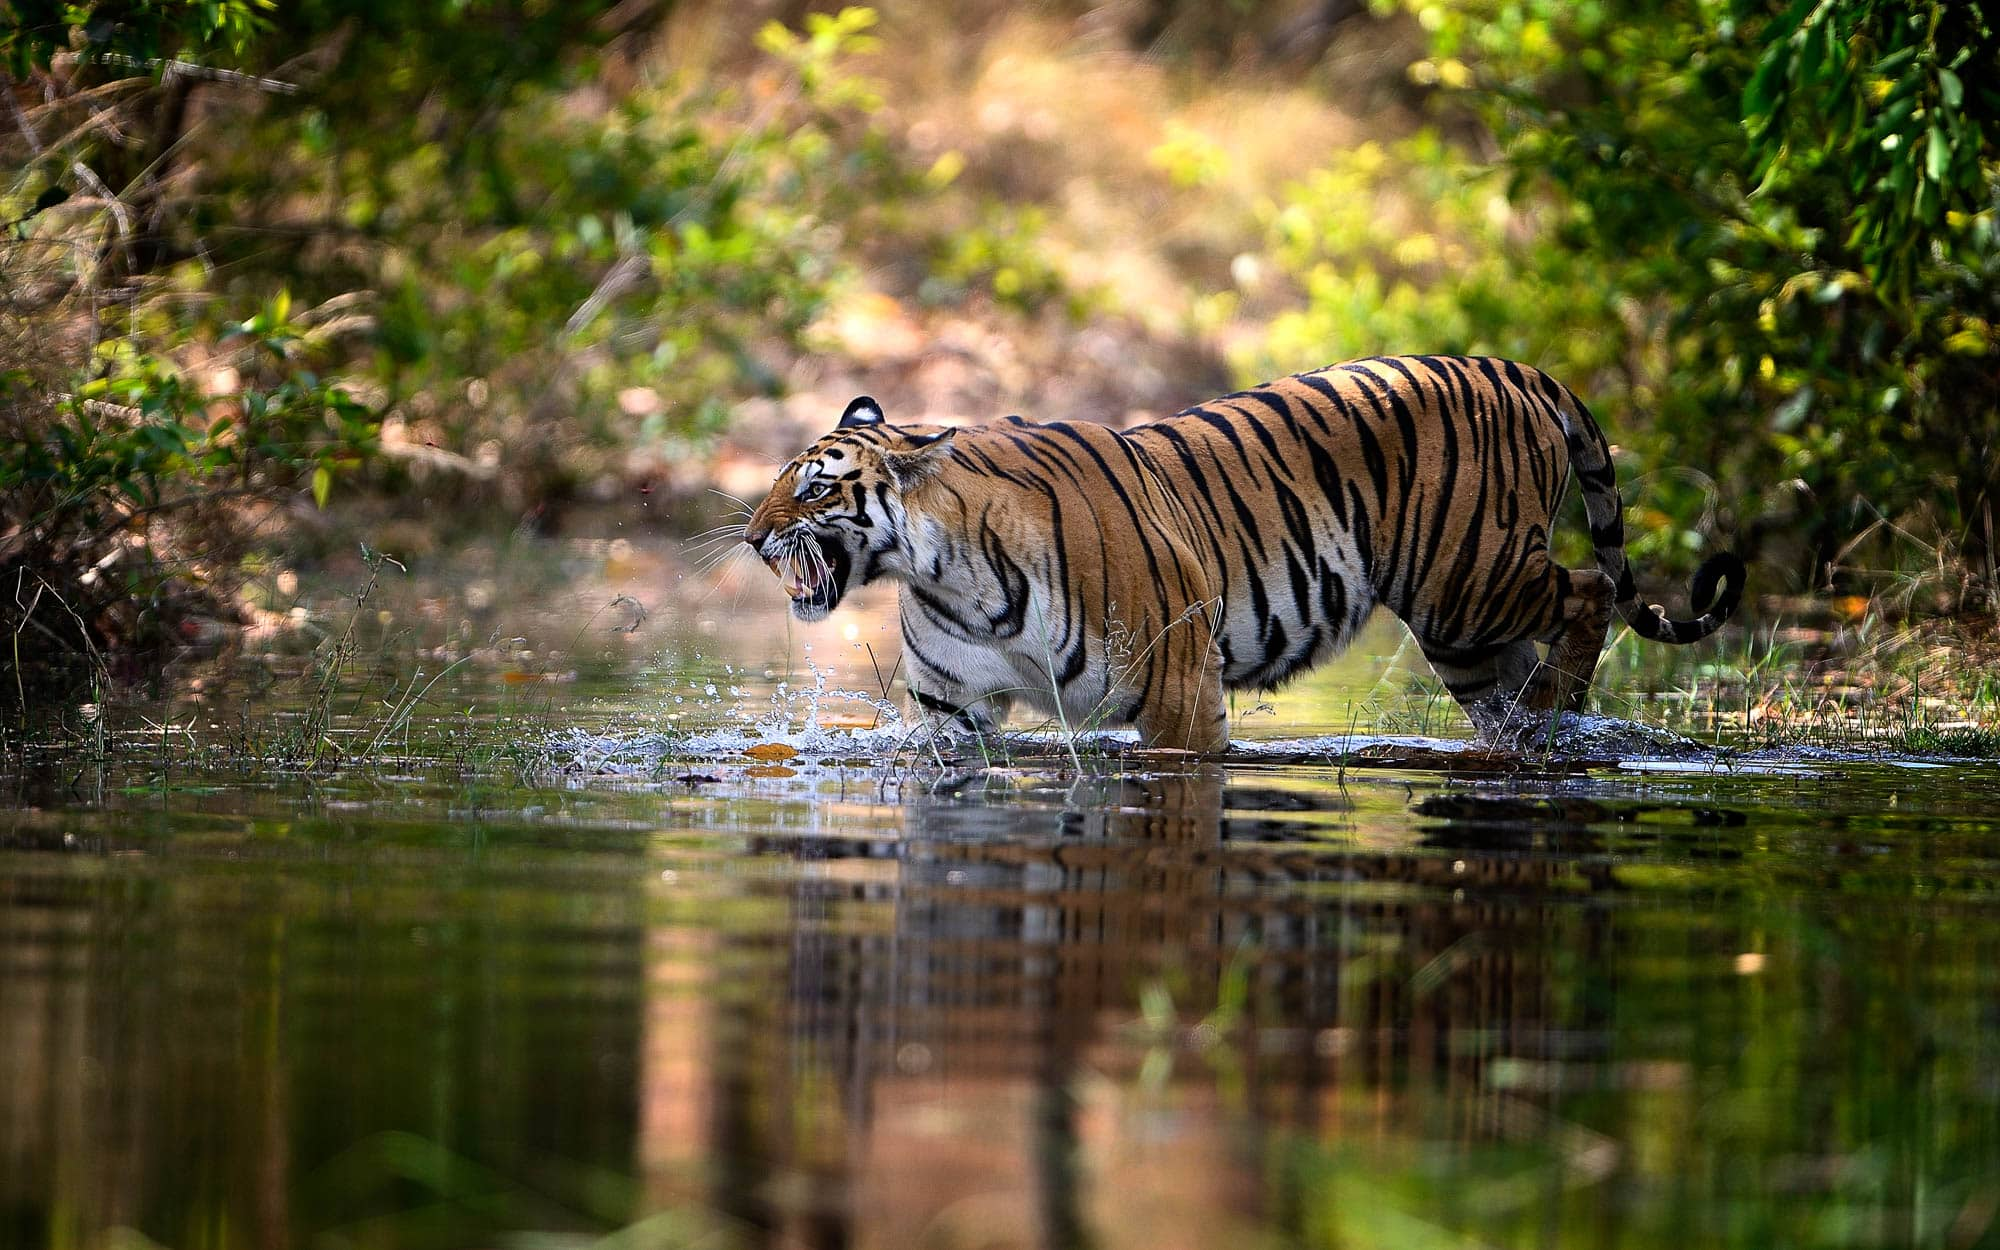 tigress in water in bandhavgarh tour